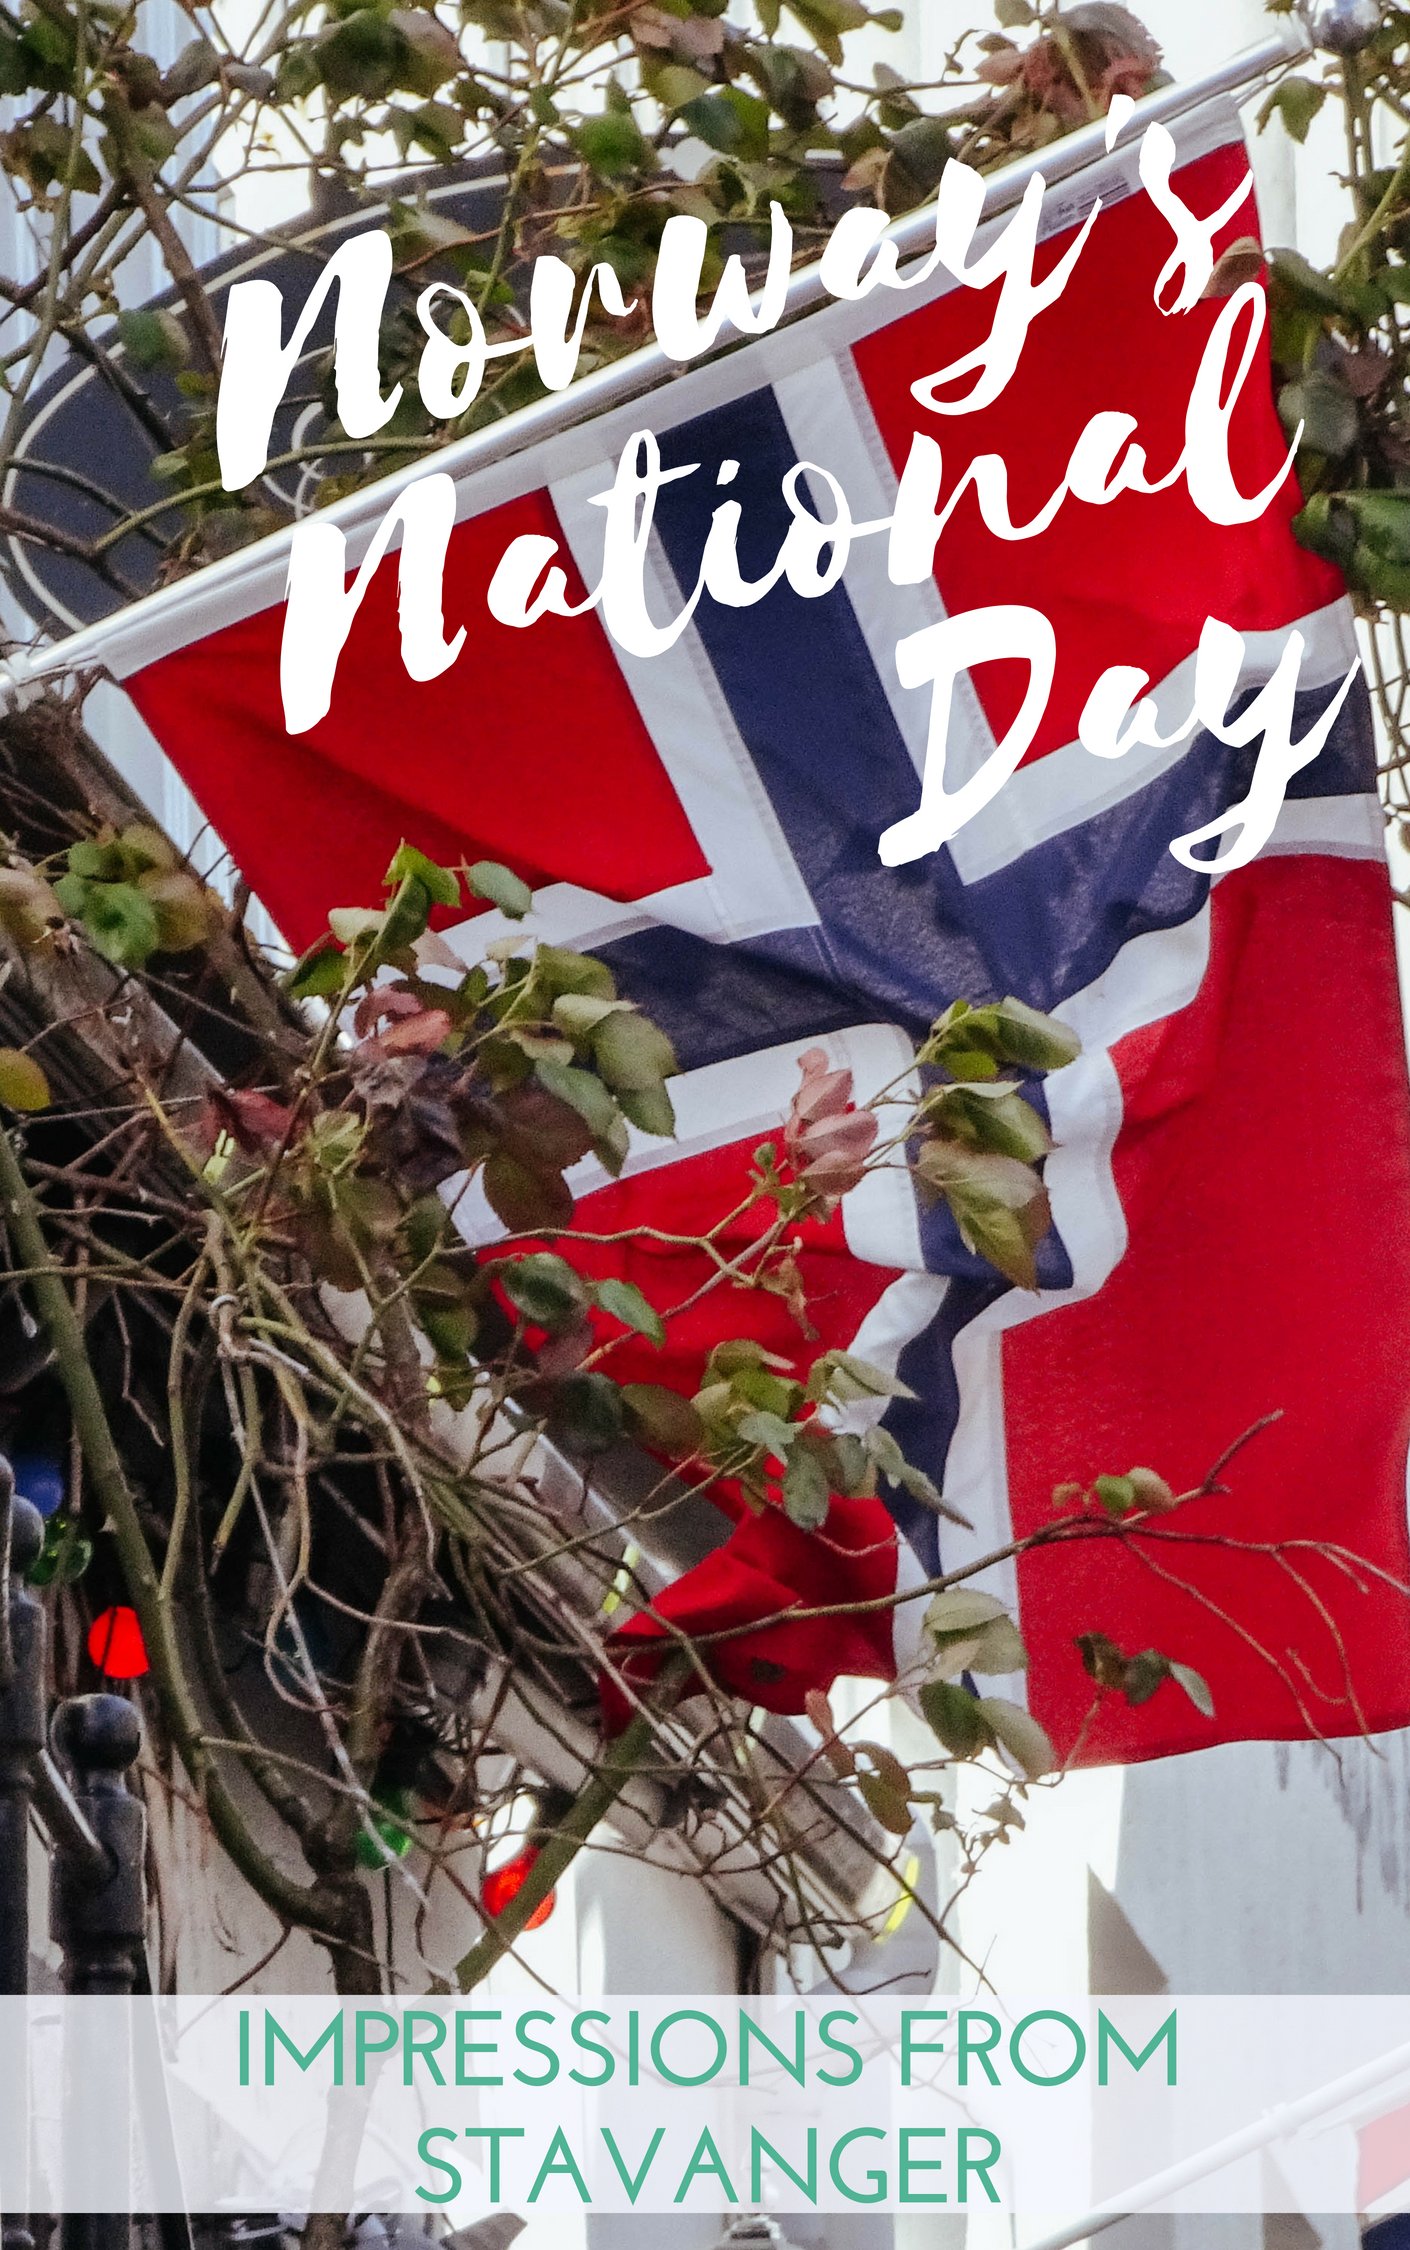 Curious to see what Norway's National Day is like in Stavanger? Click through for more impressions!